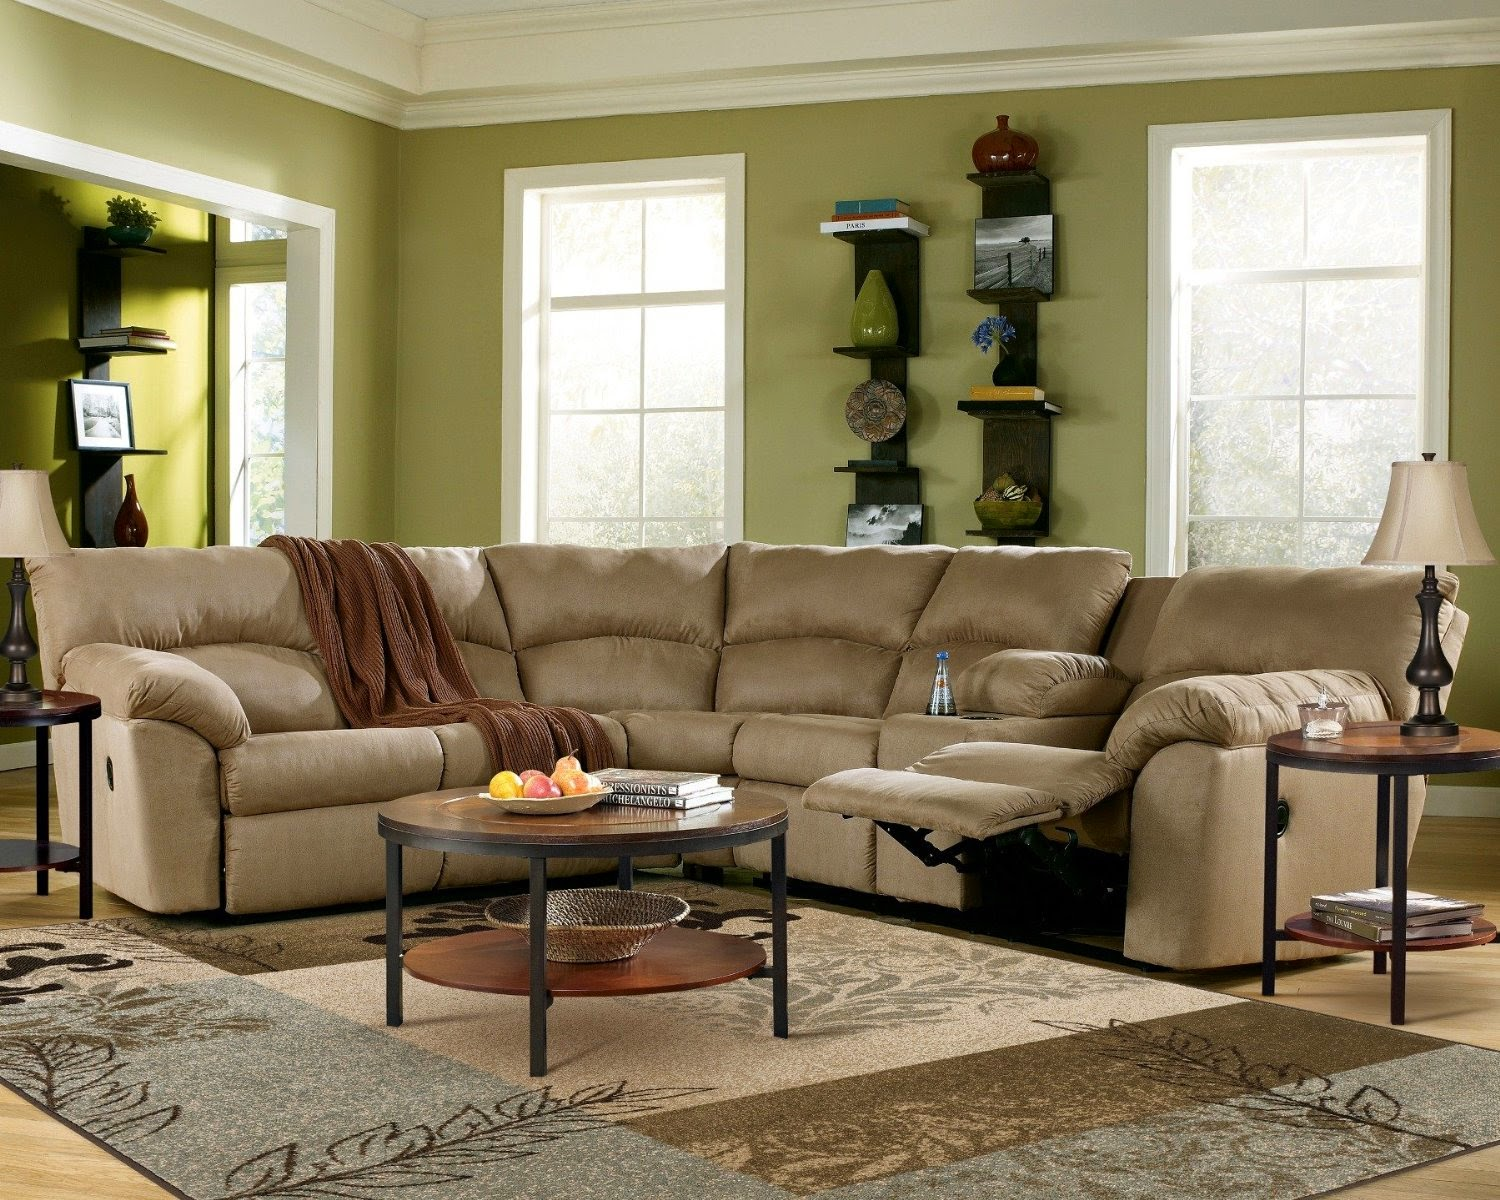 Corner sofas for small spaces - Cheap Reclining Sofa And Loveseat Sets Curved Leather Reclining Sofa And Loveseat